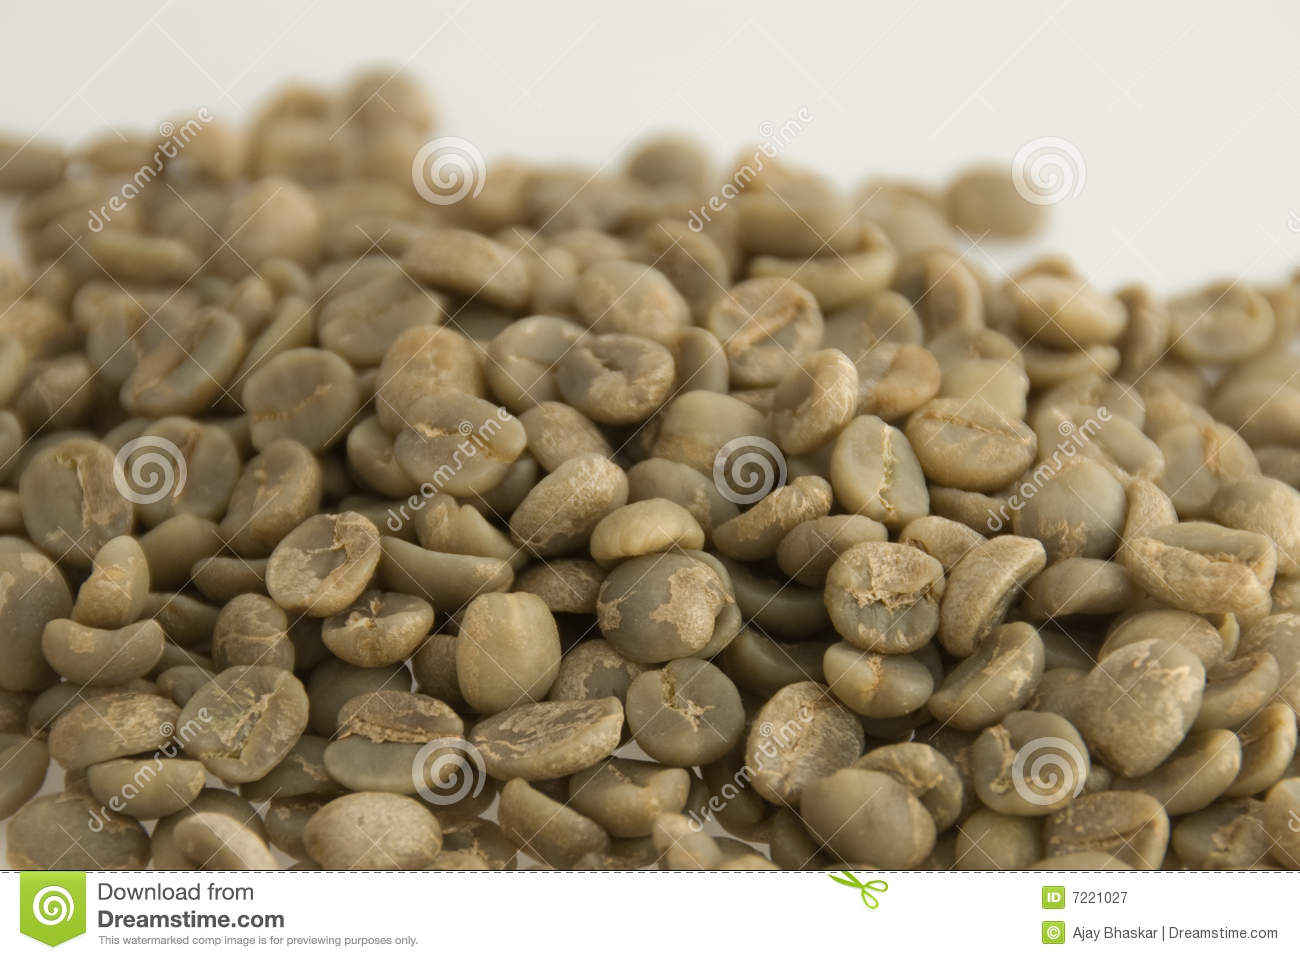 Unroasted Organic Arabica Coffee Beans Unroasted Coffee Beans Royalty Free Stock Photography